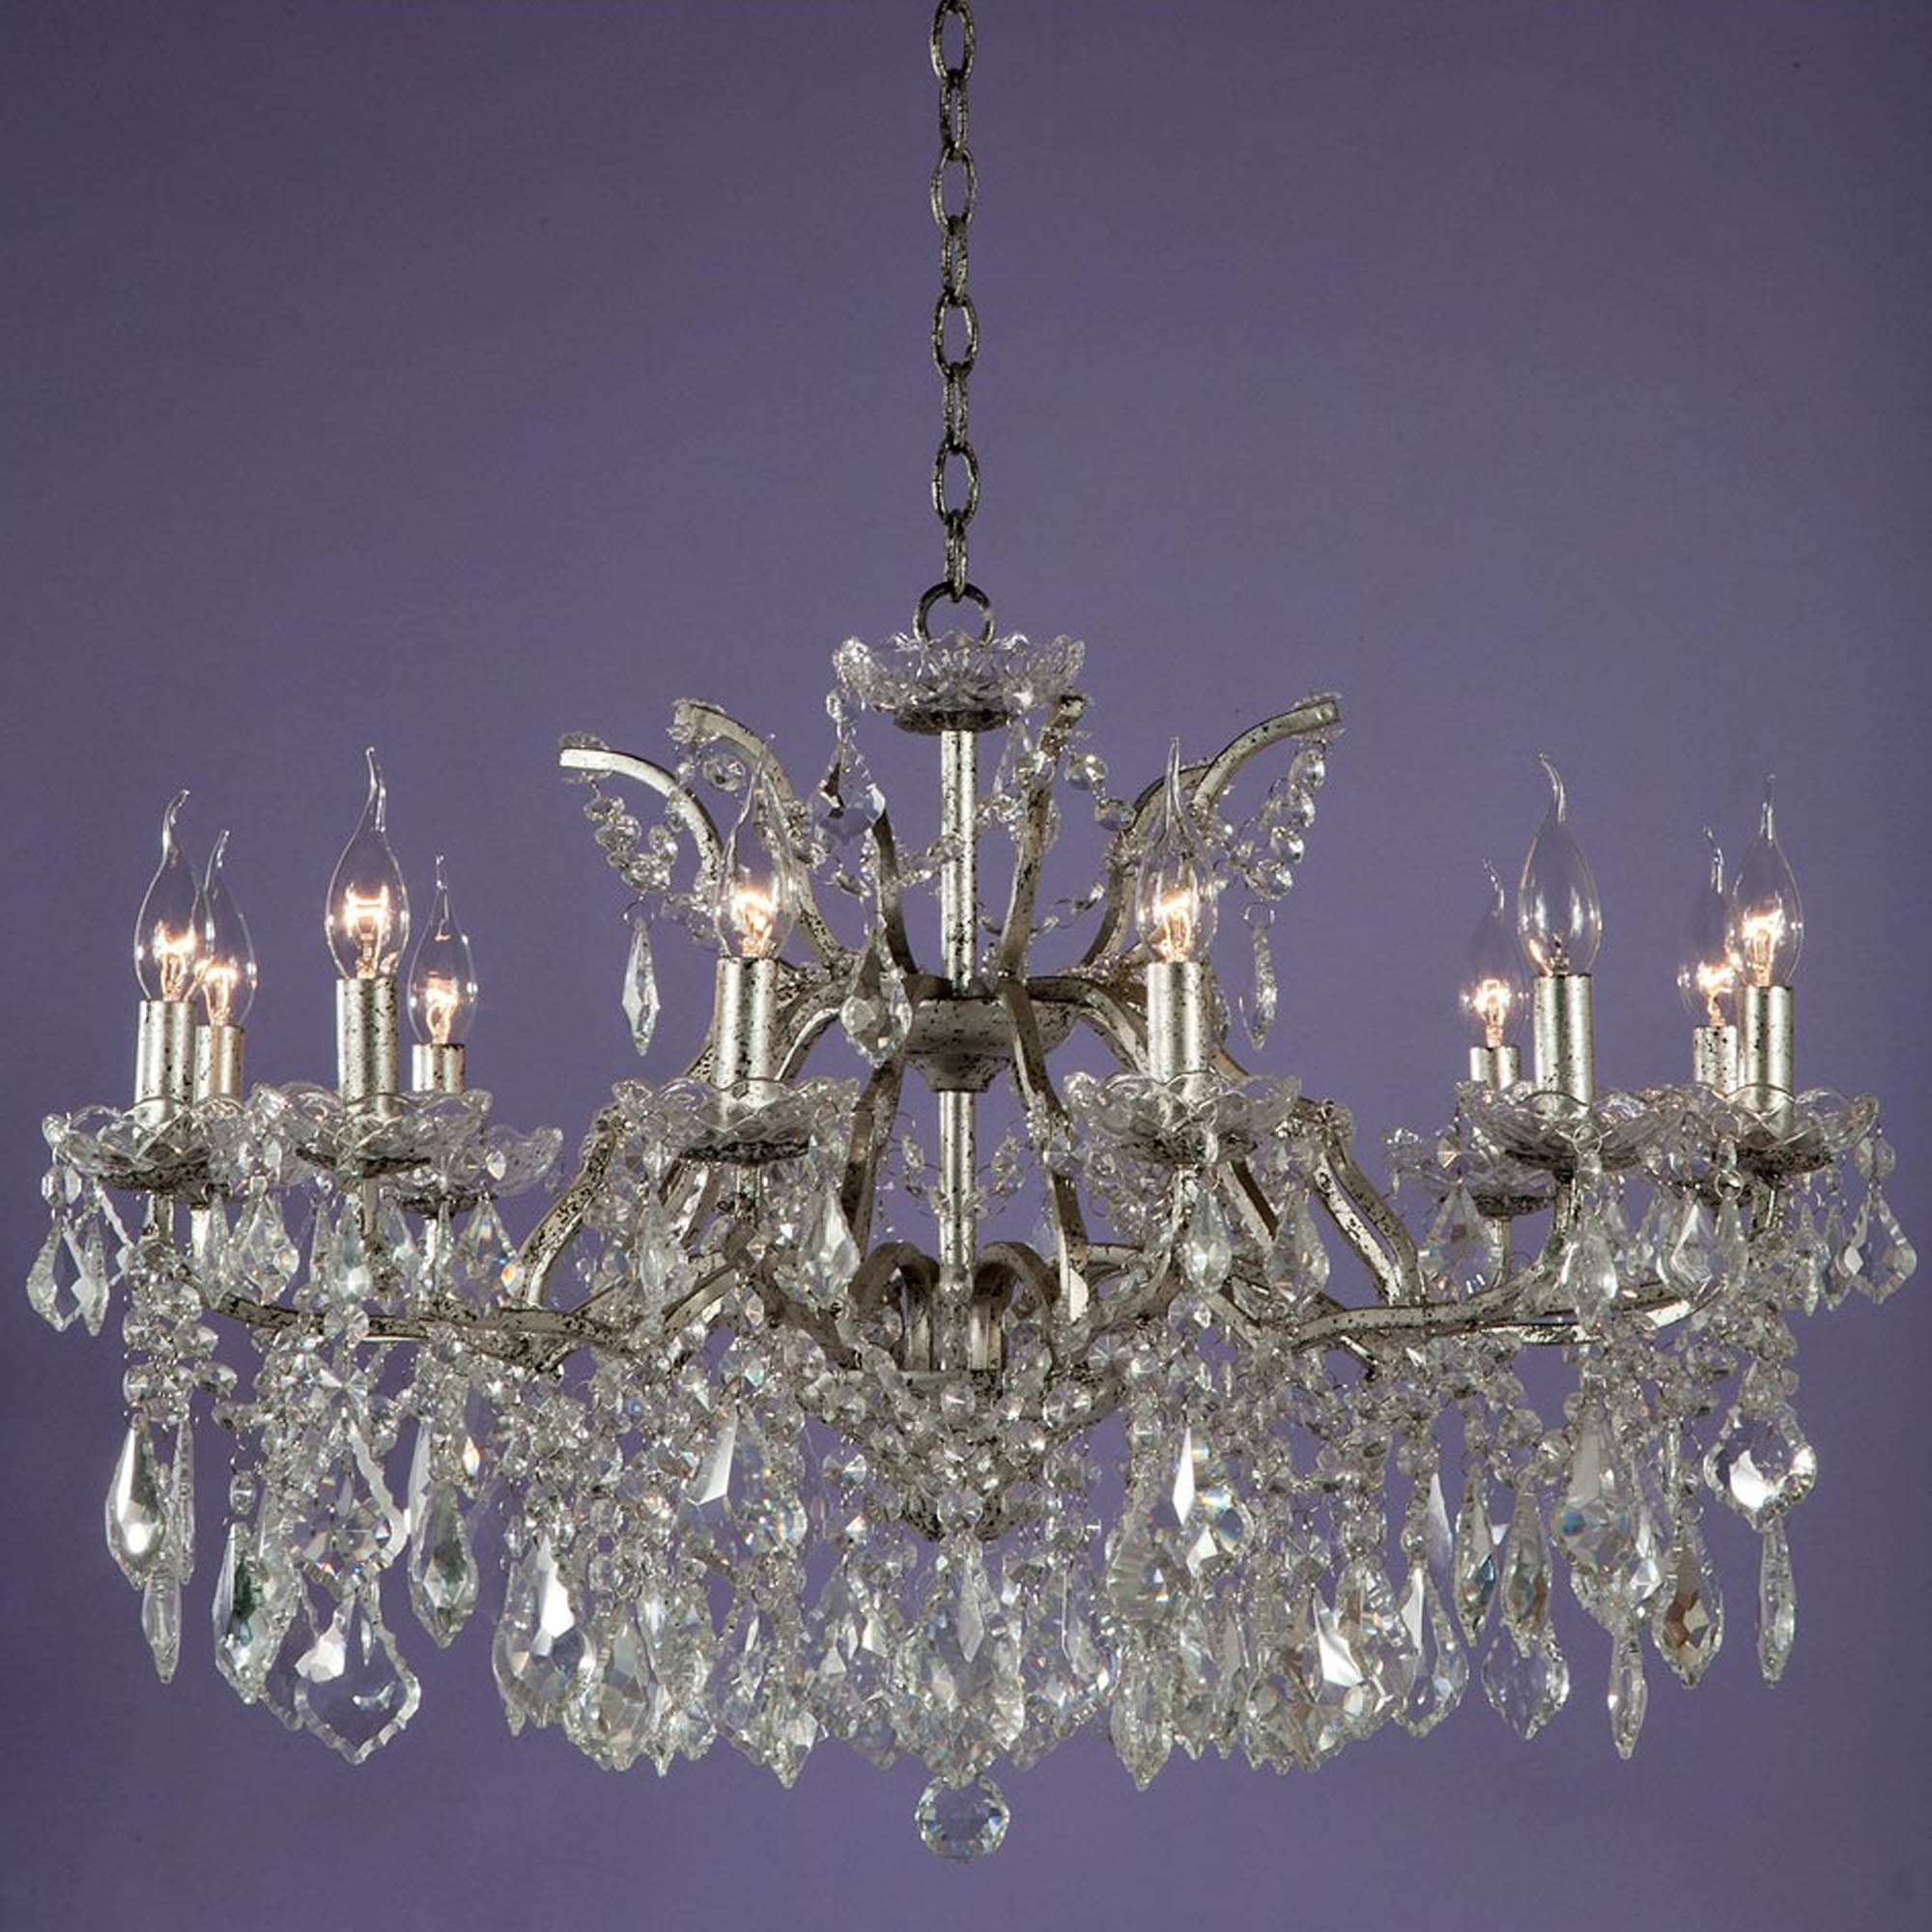 Vivianne silver antique french style chandelier chandeliers vivianne silver antique french style chandelier aloadofball Choice Image